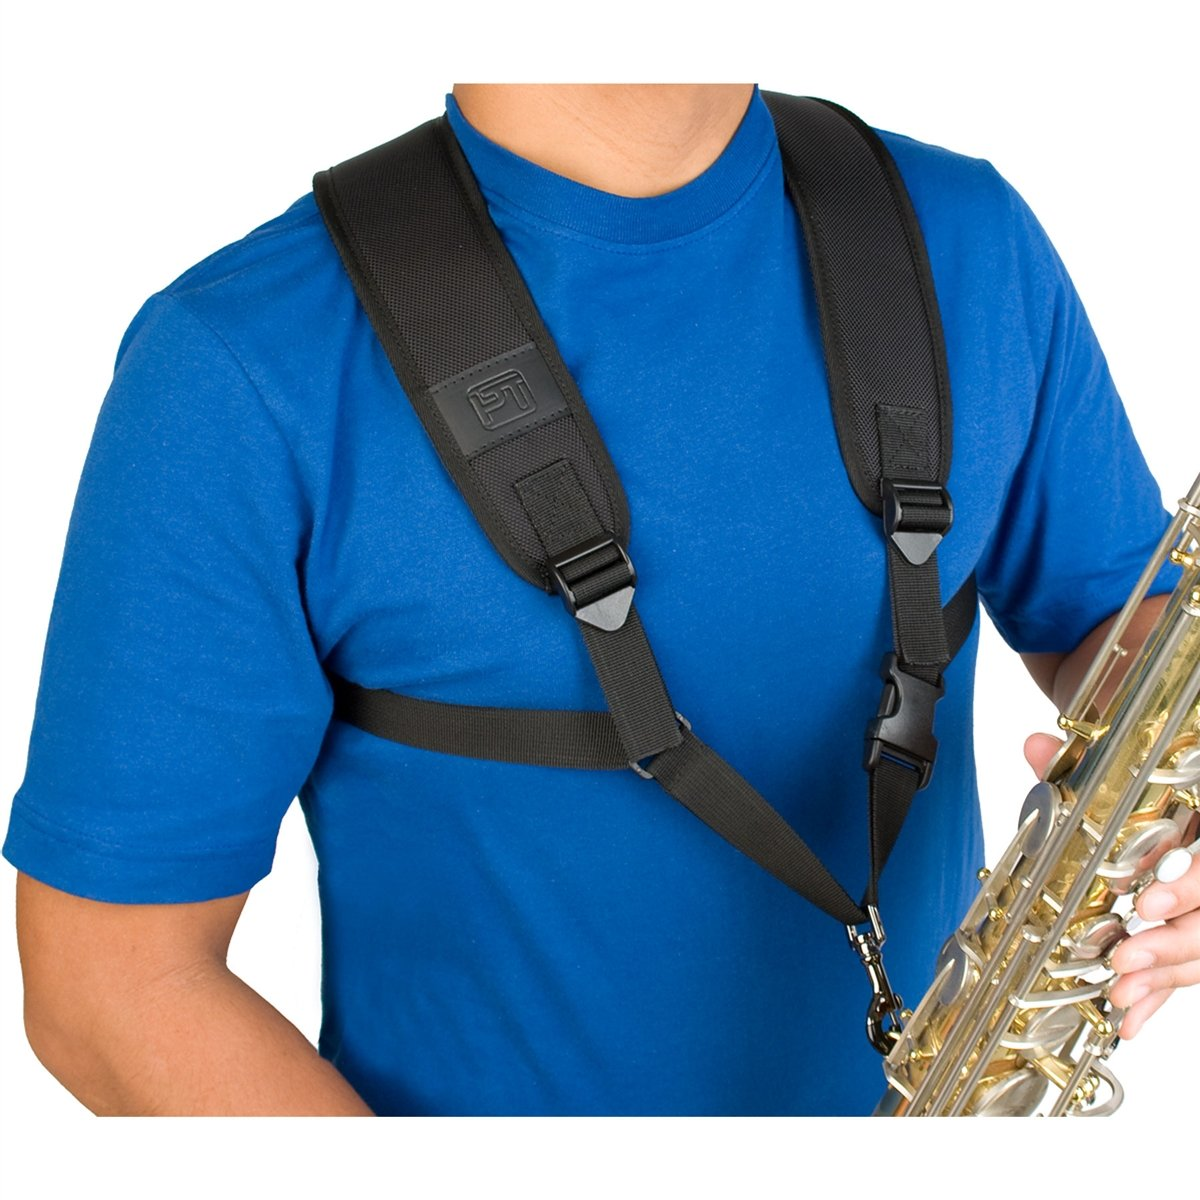 Protec - Saxophone Harness with Deluxe Metal Trigger Snap-Accessories-Protec-Music Elements